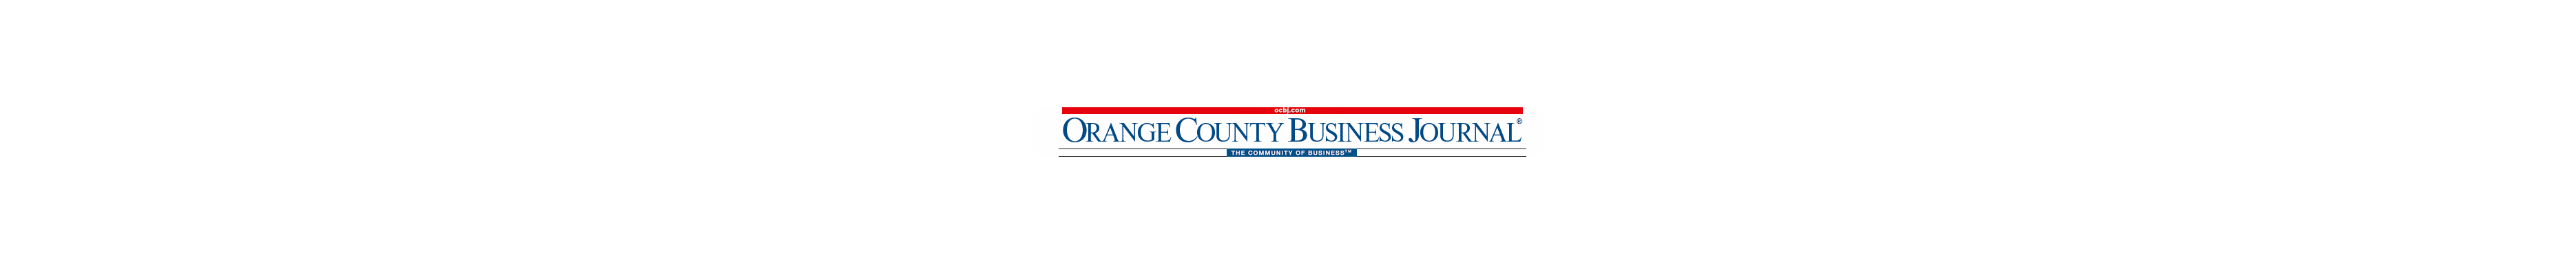 orange-county-business-journal-logo